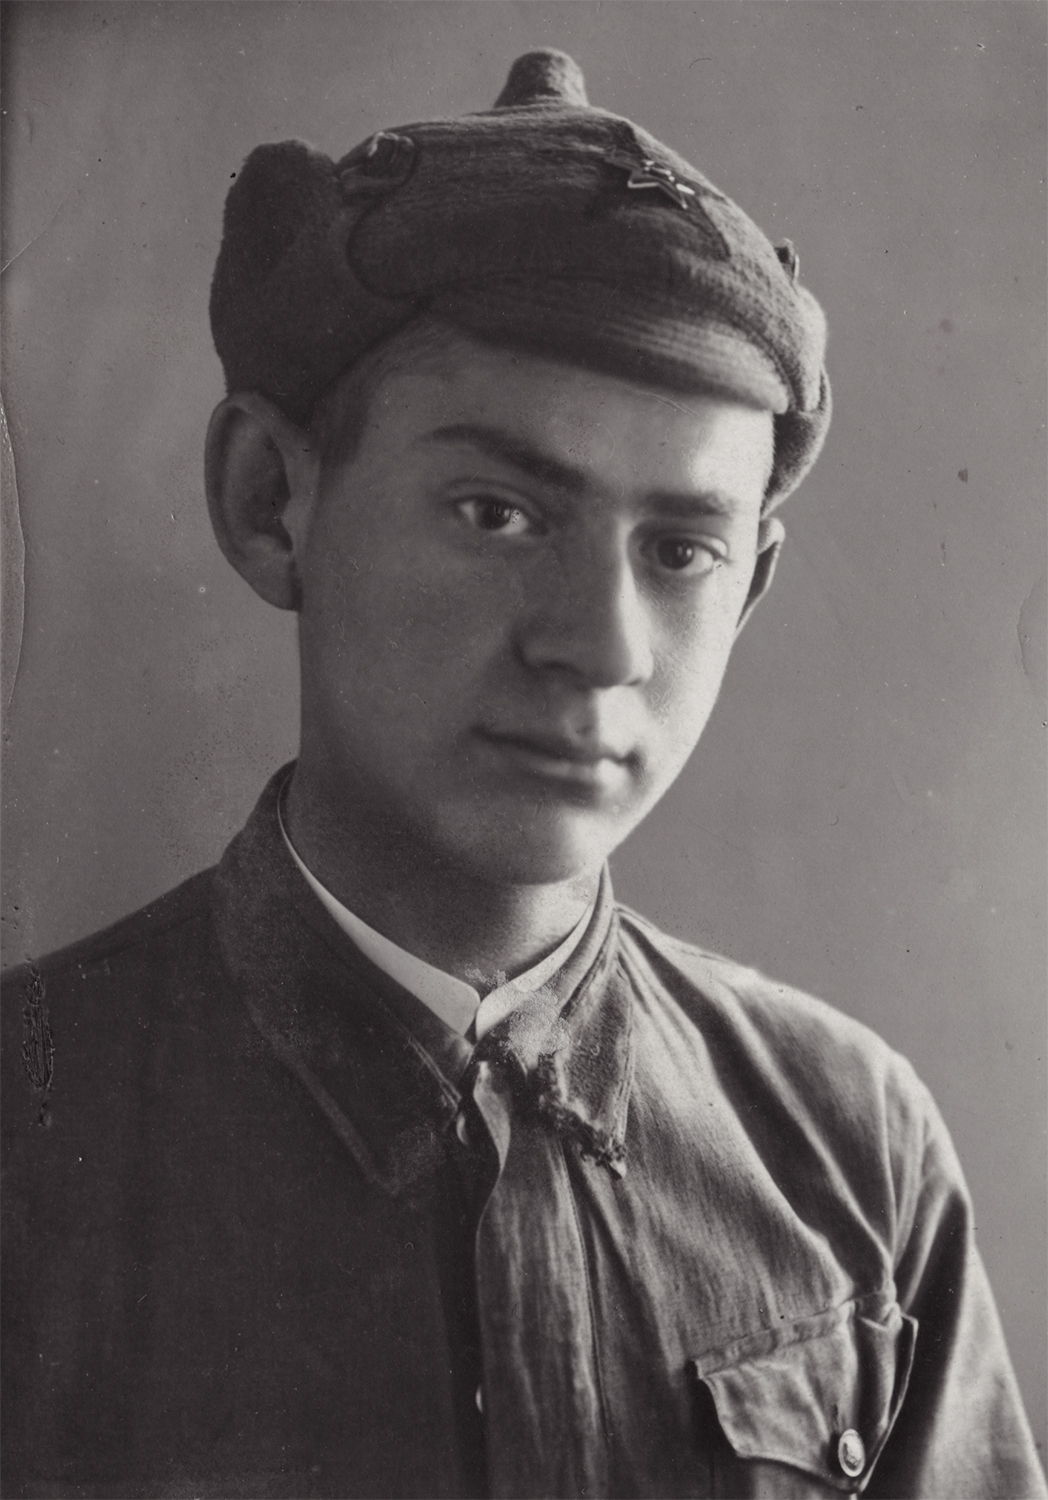 Photograph, Aaron Chernyak. October 9, 1940